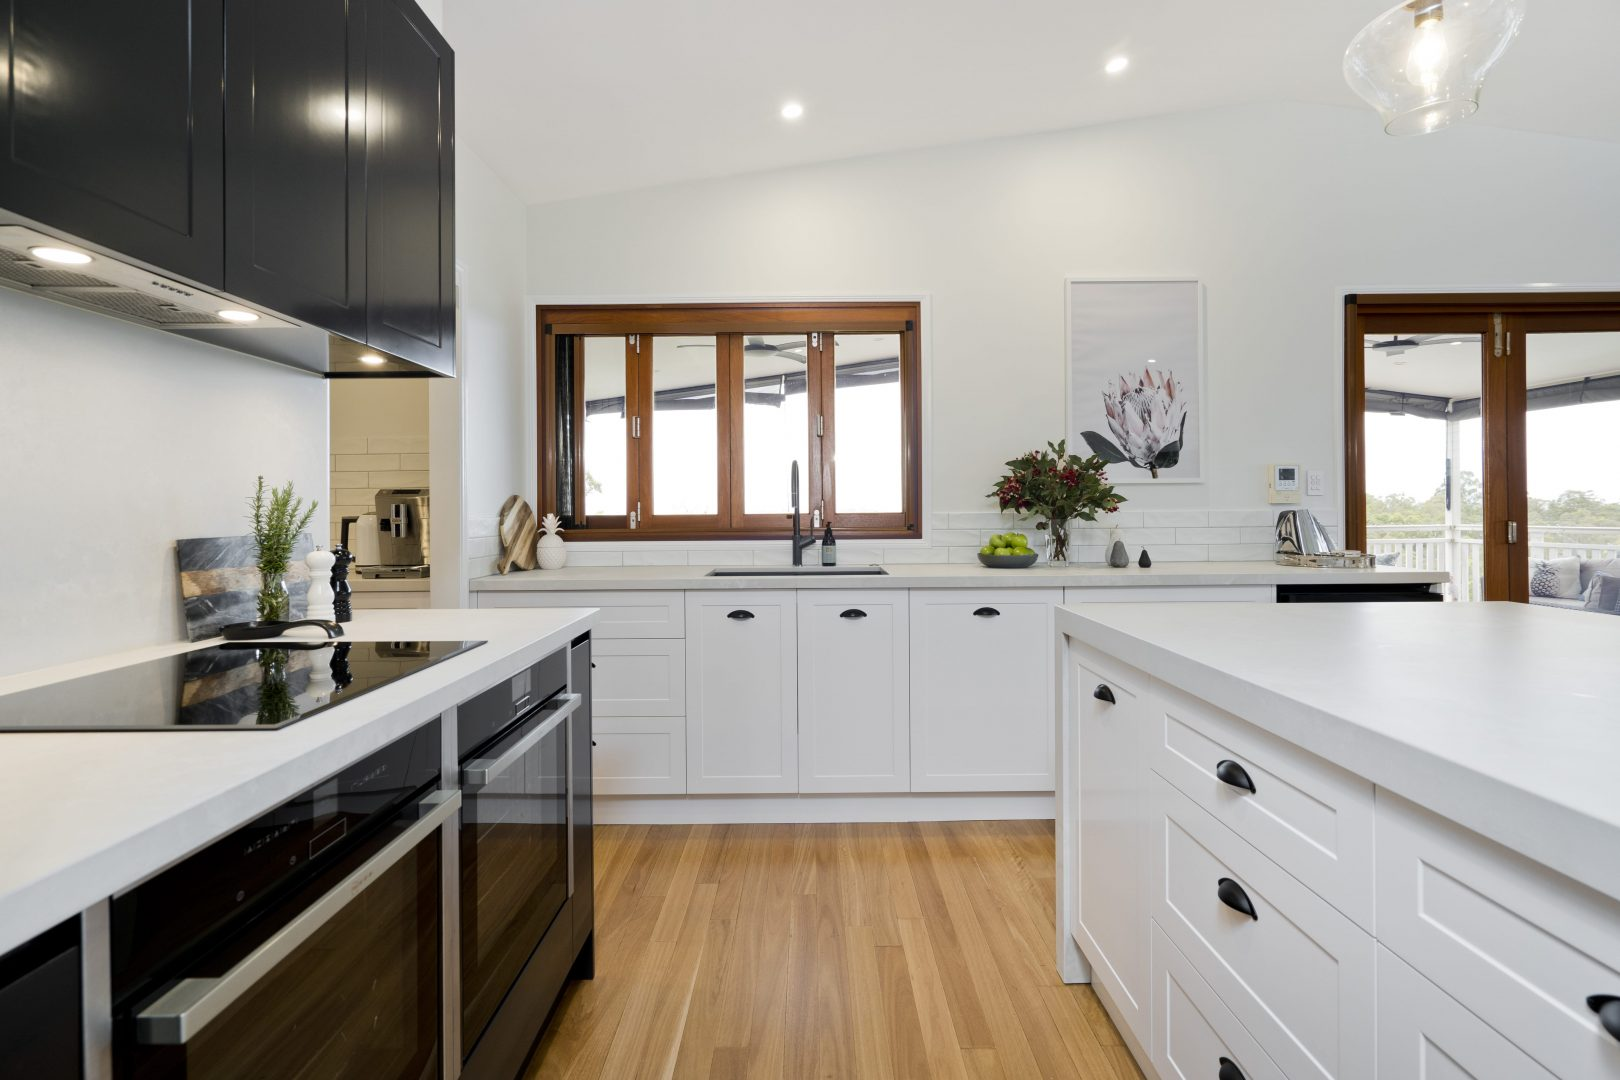 5 Top Tips for Planning a New Kitchen